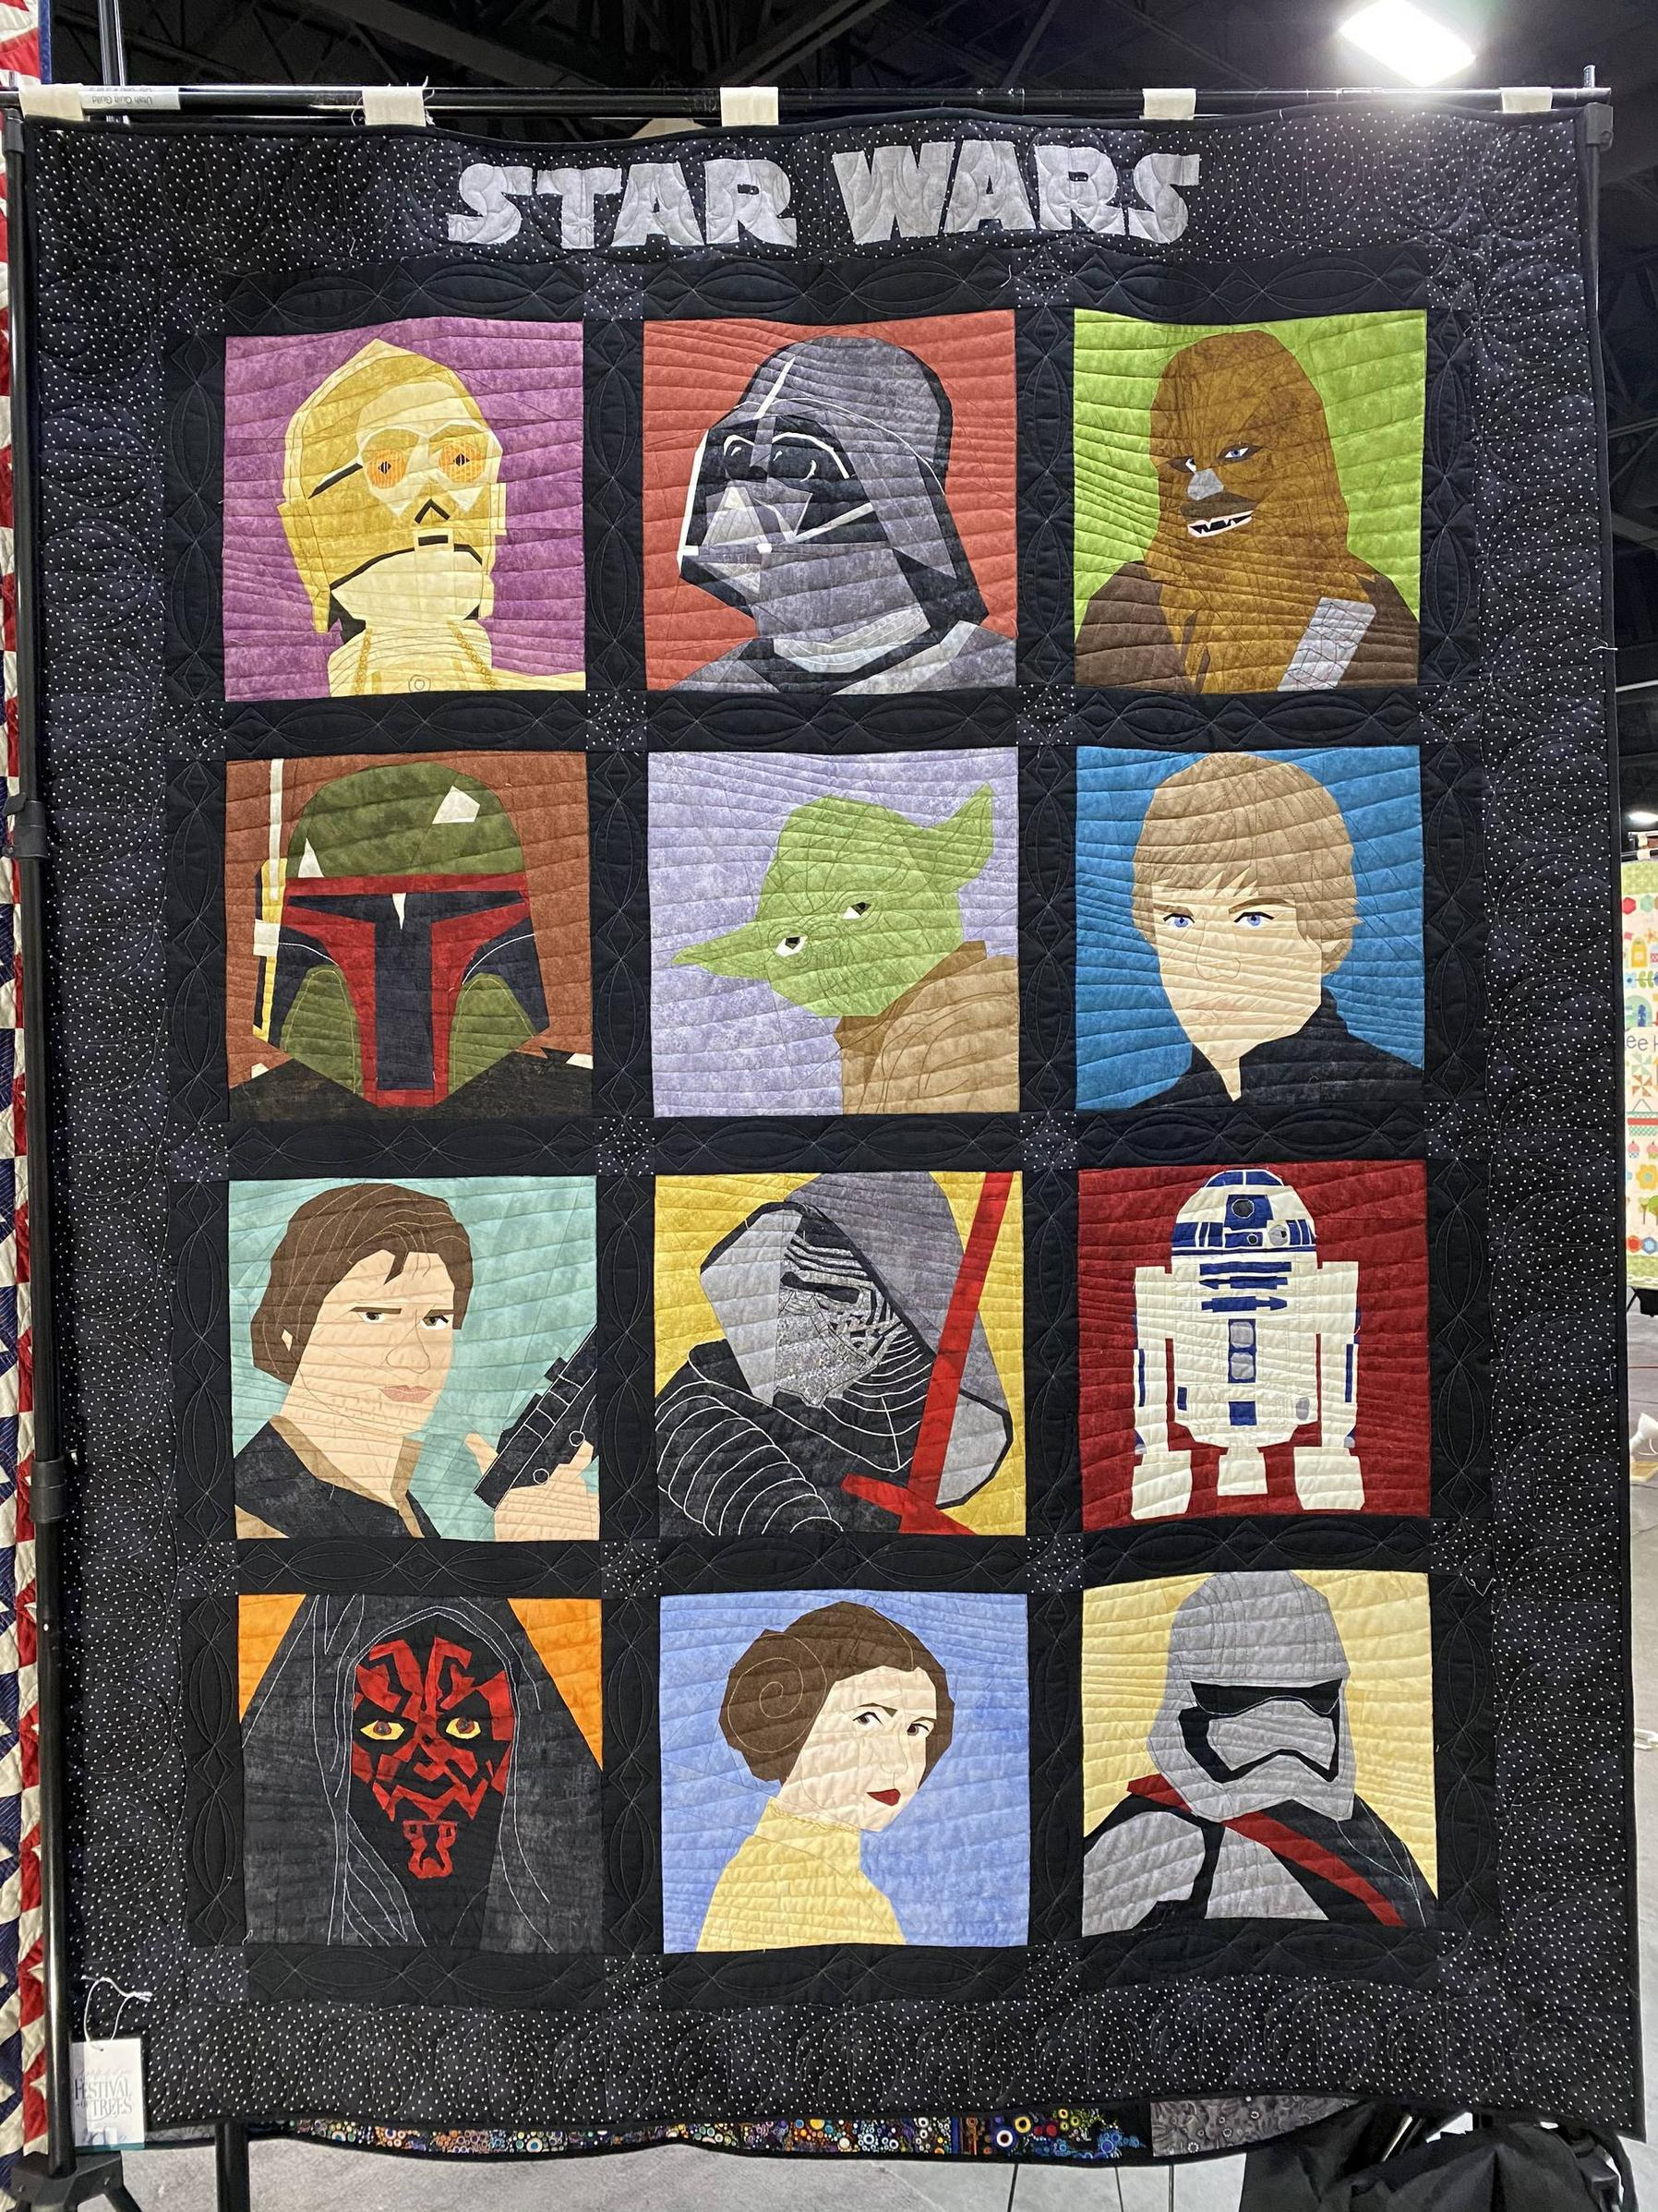 Star Wars quilt auctioned off for charity